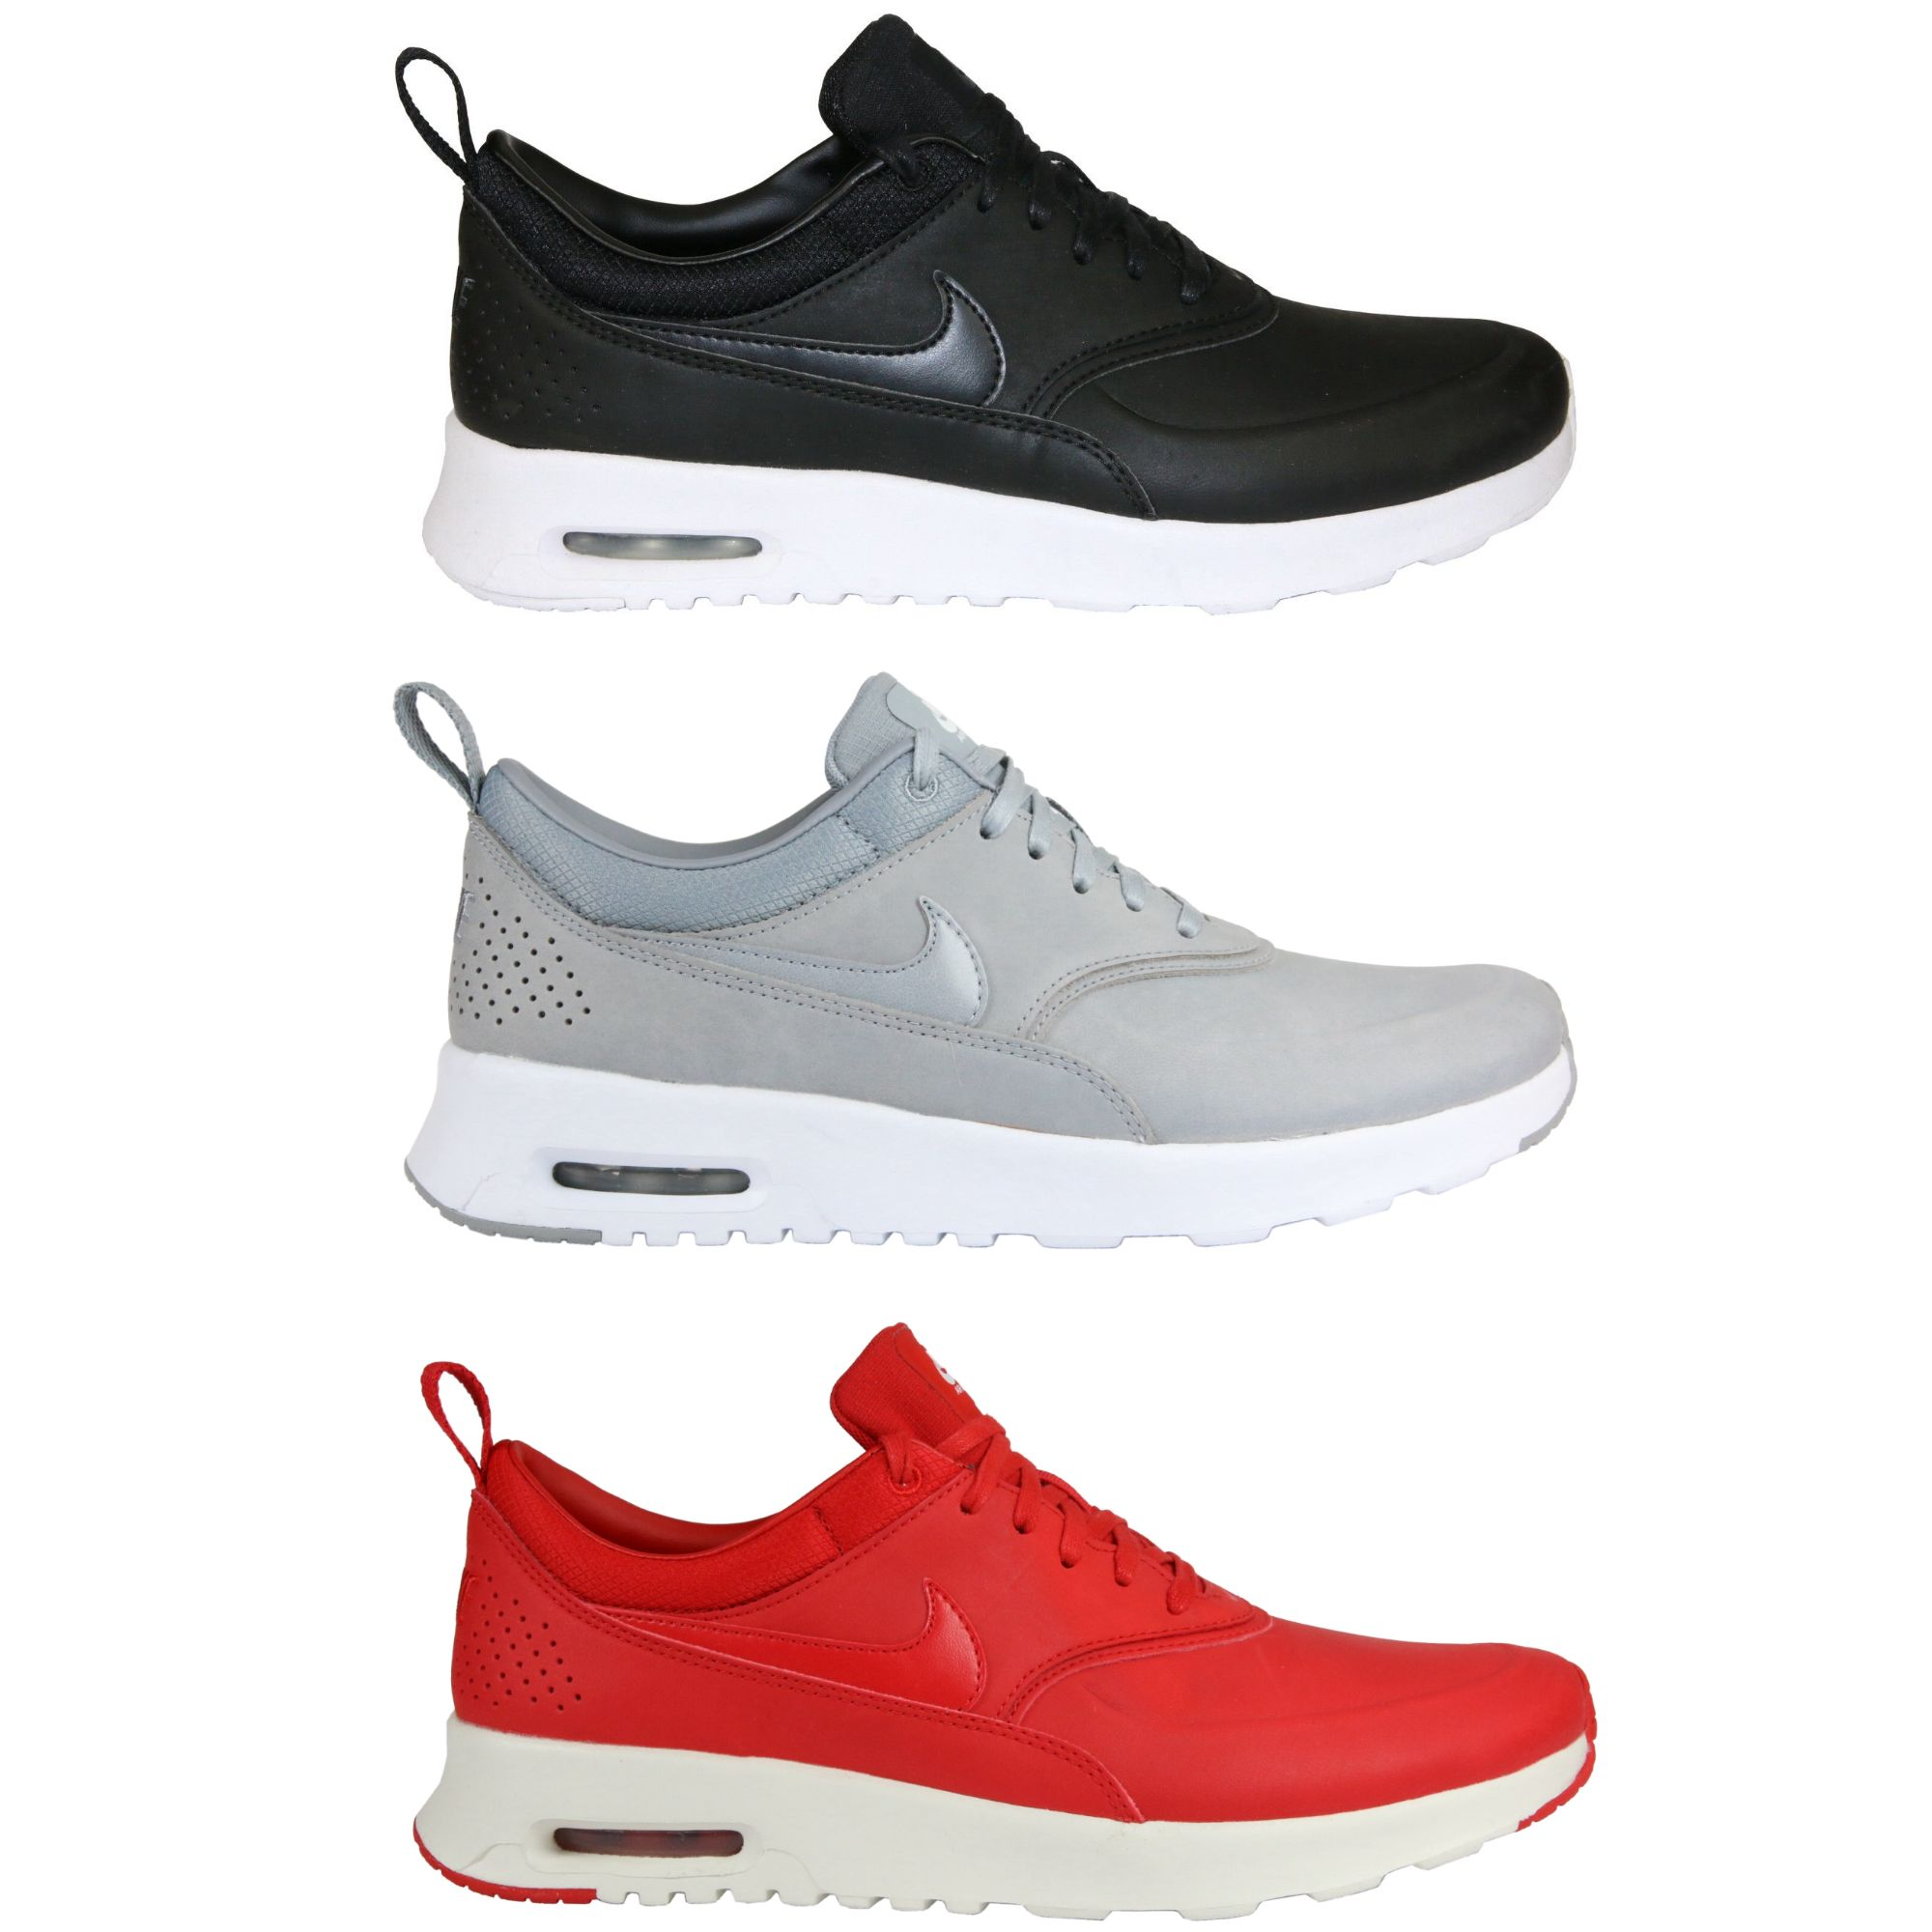 nike air max thea premium schuhe sneaker turnschuhe leder. Black Bedroom Furniture Sets. Home Design Ideas